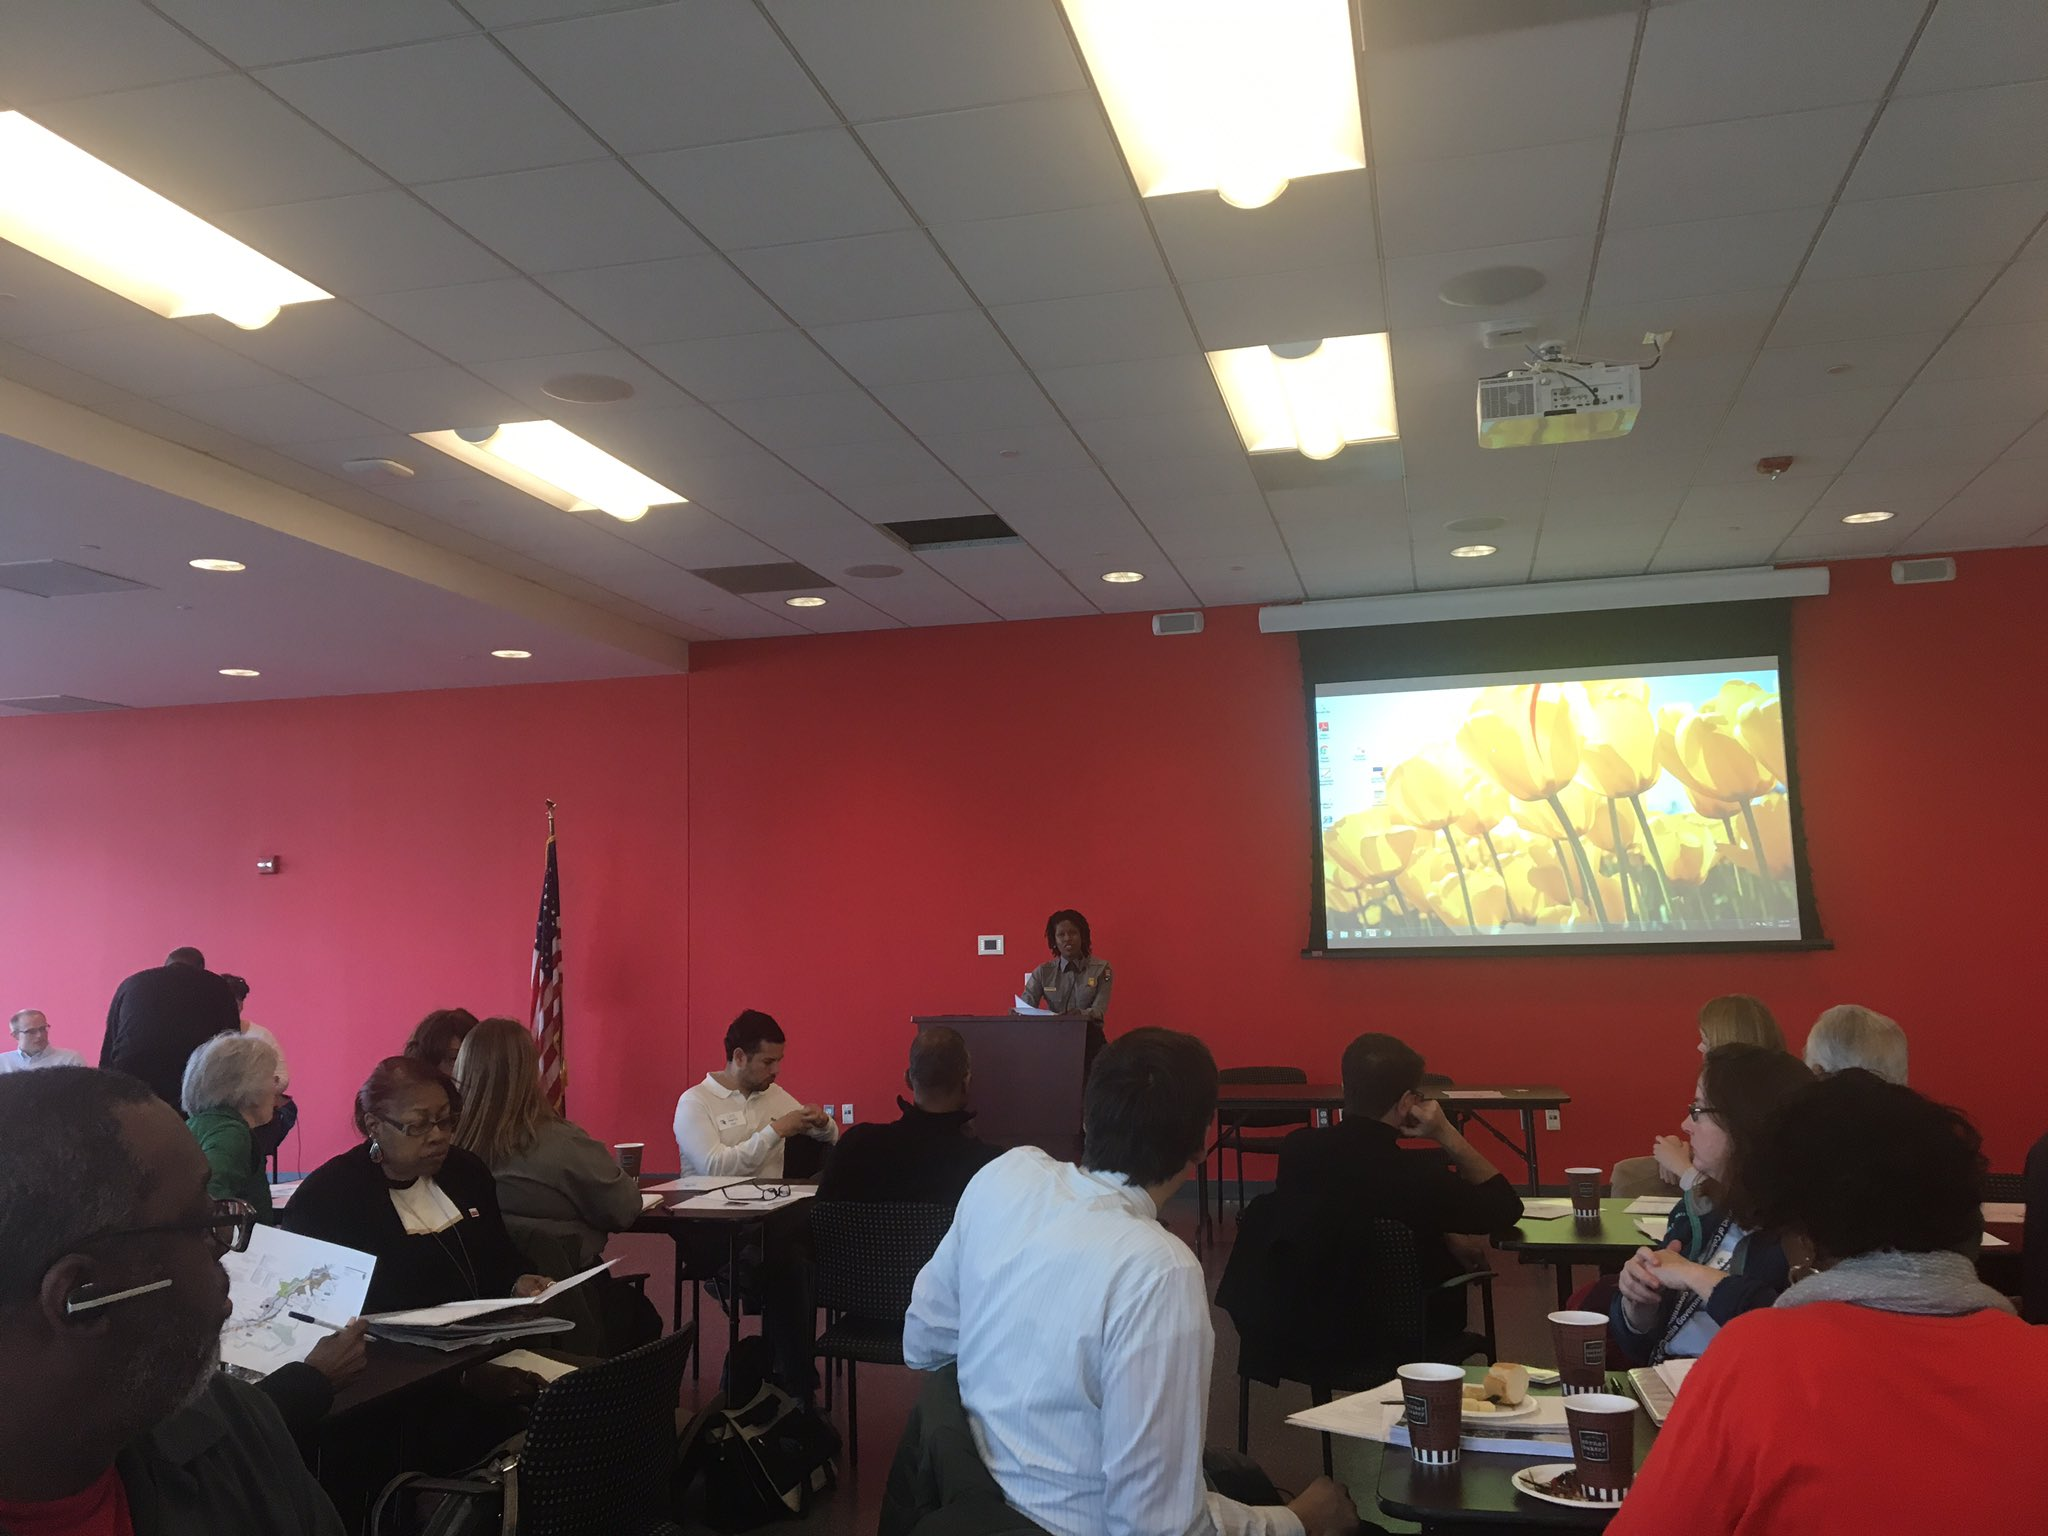 @AnacostiaNPS #shapeanacostiapark with NPS Tara Morrison highlighting strategic #collaboration #inclusion #restoration #youthengagement https://t.co/cY8TFvZtvC